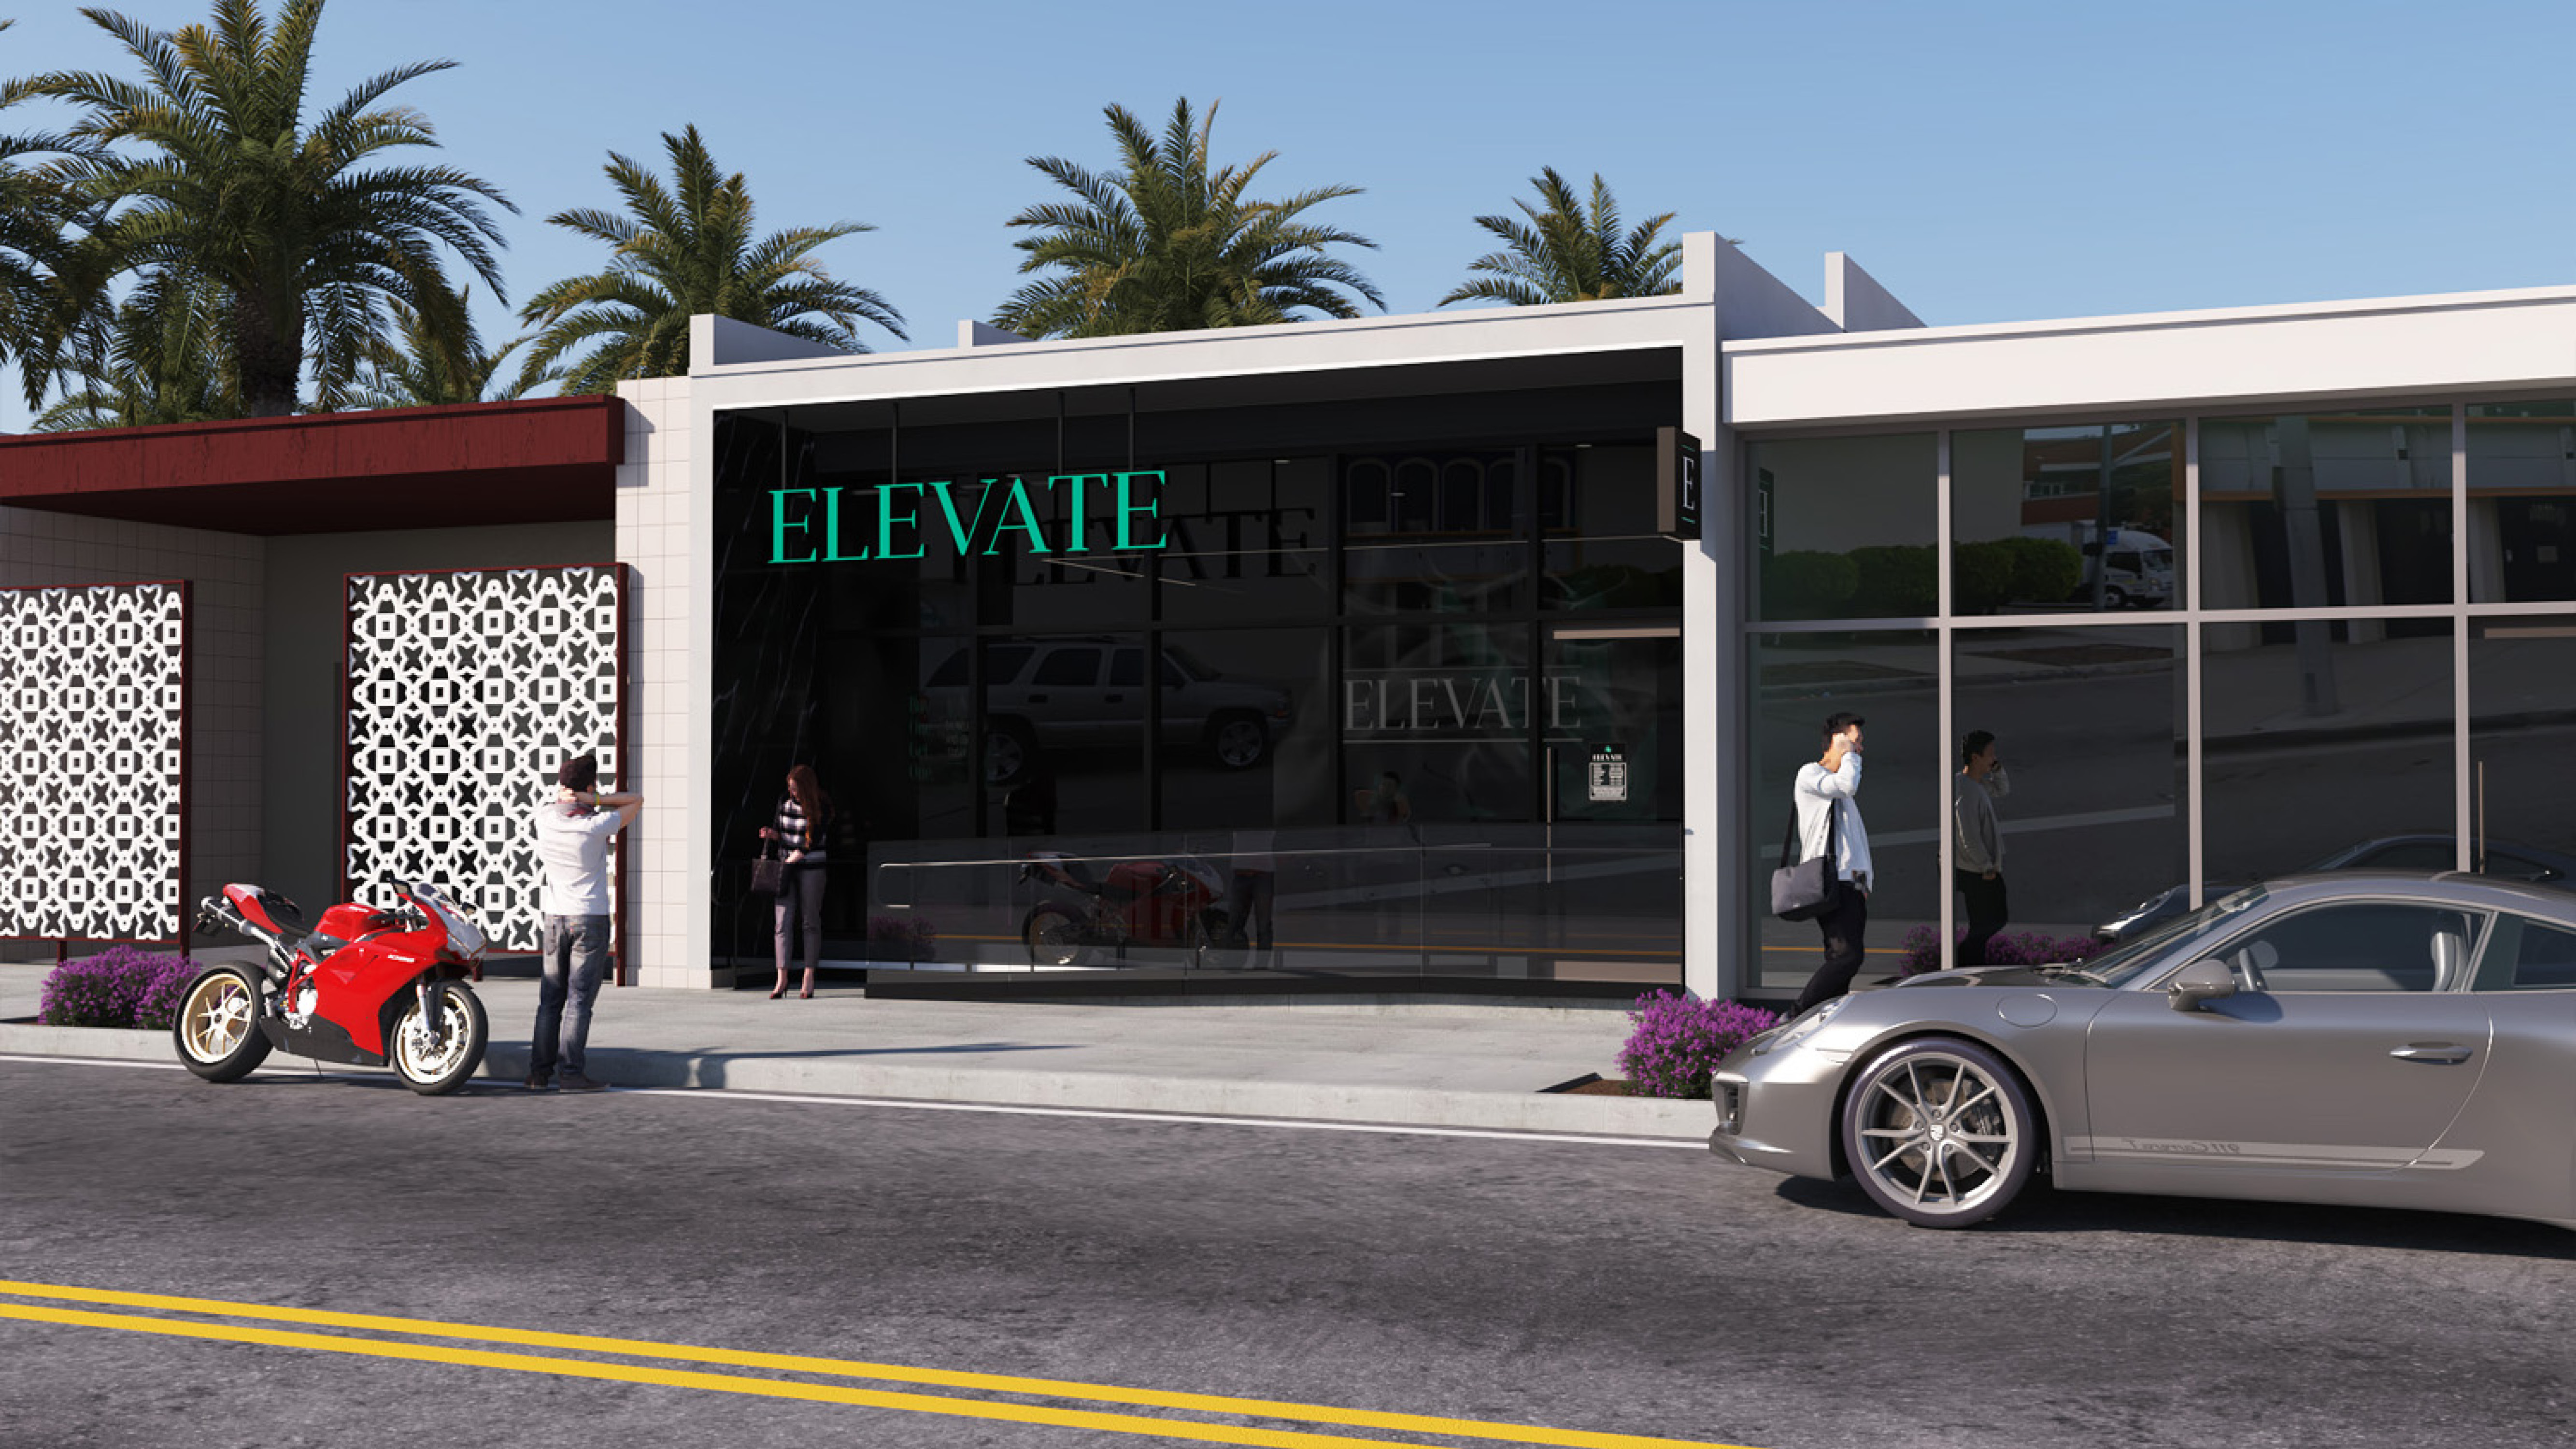 Elevate Dispensary in Oxnard CA. Retail Dispensary Design by High Road Studio, coming soon.